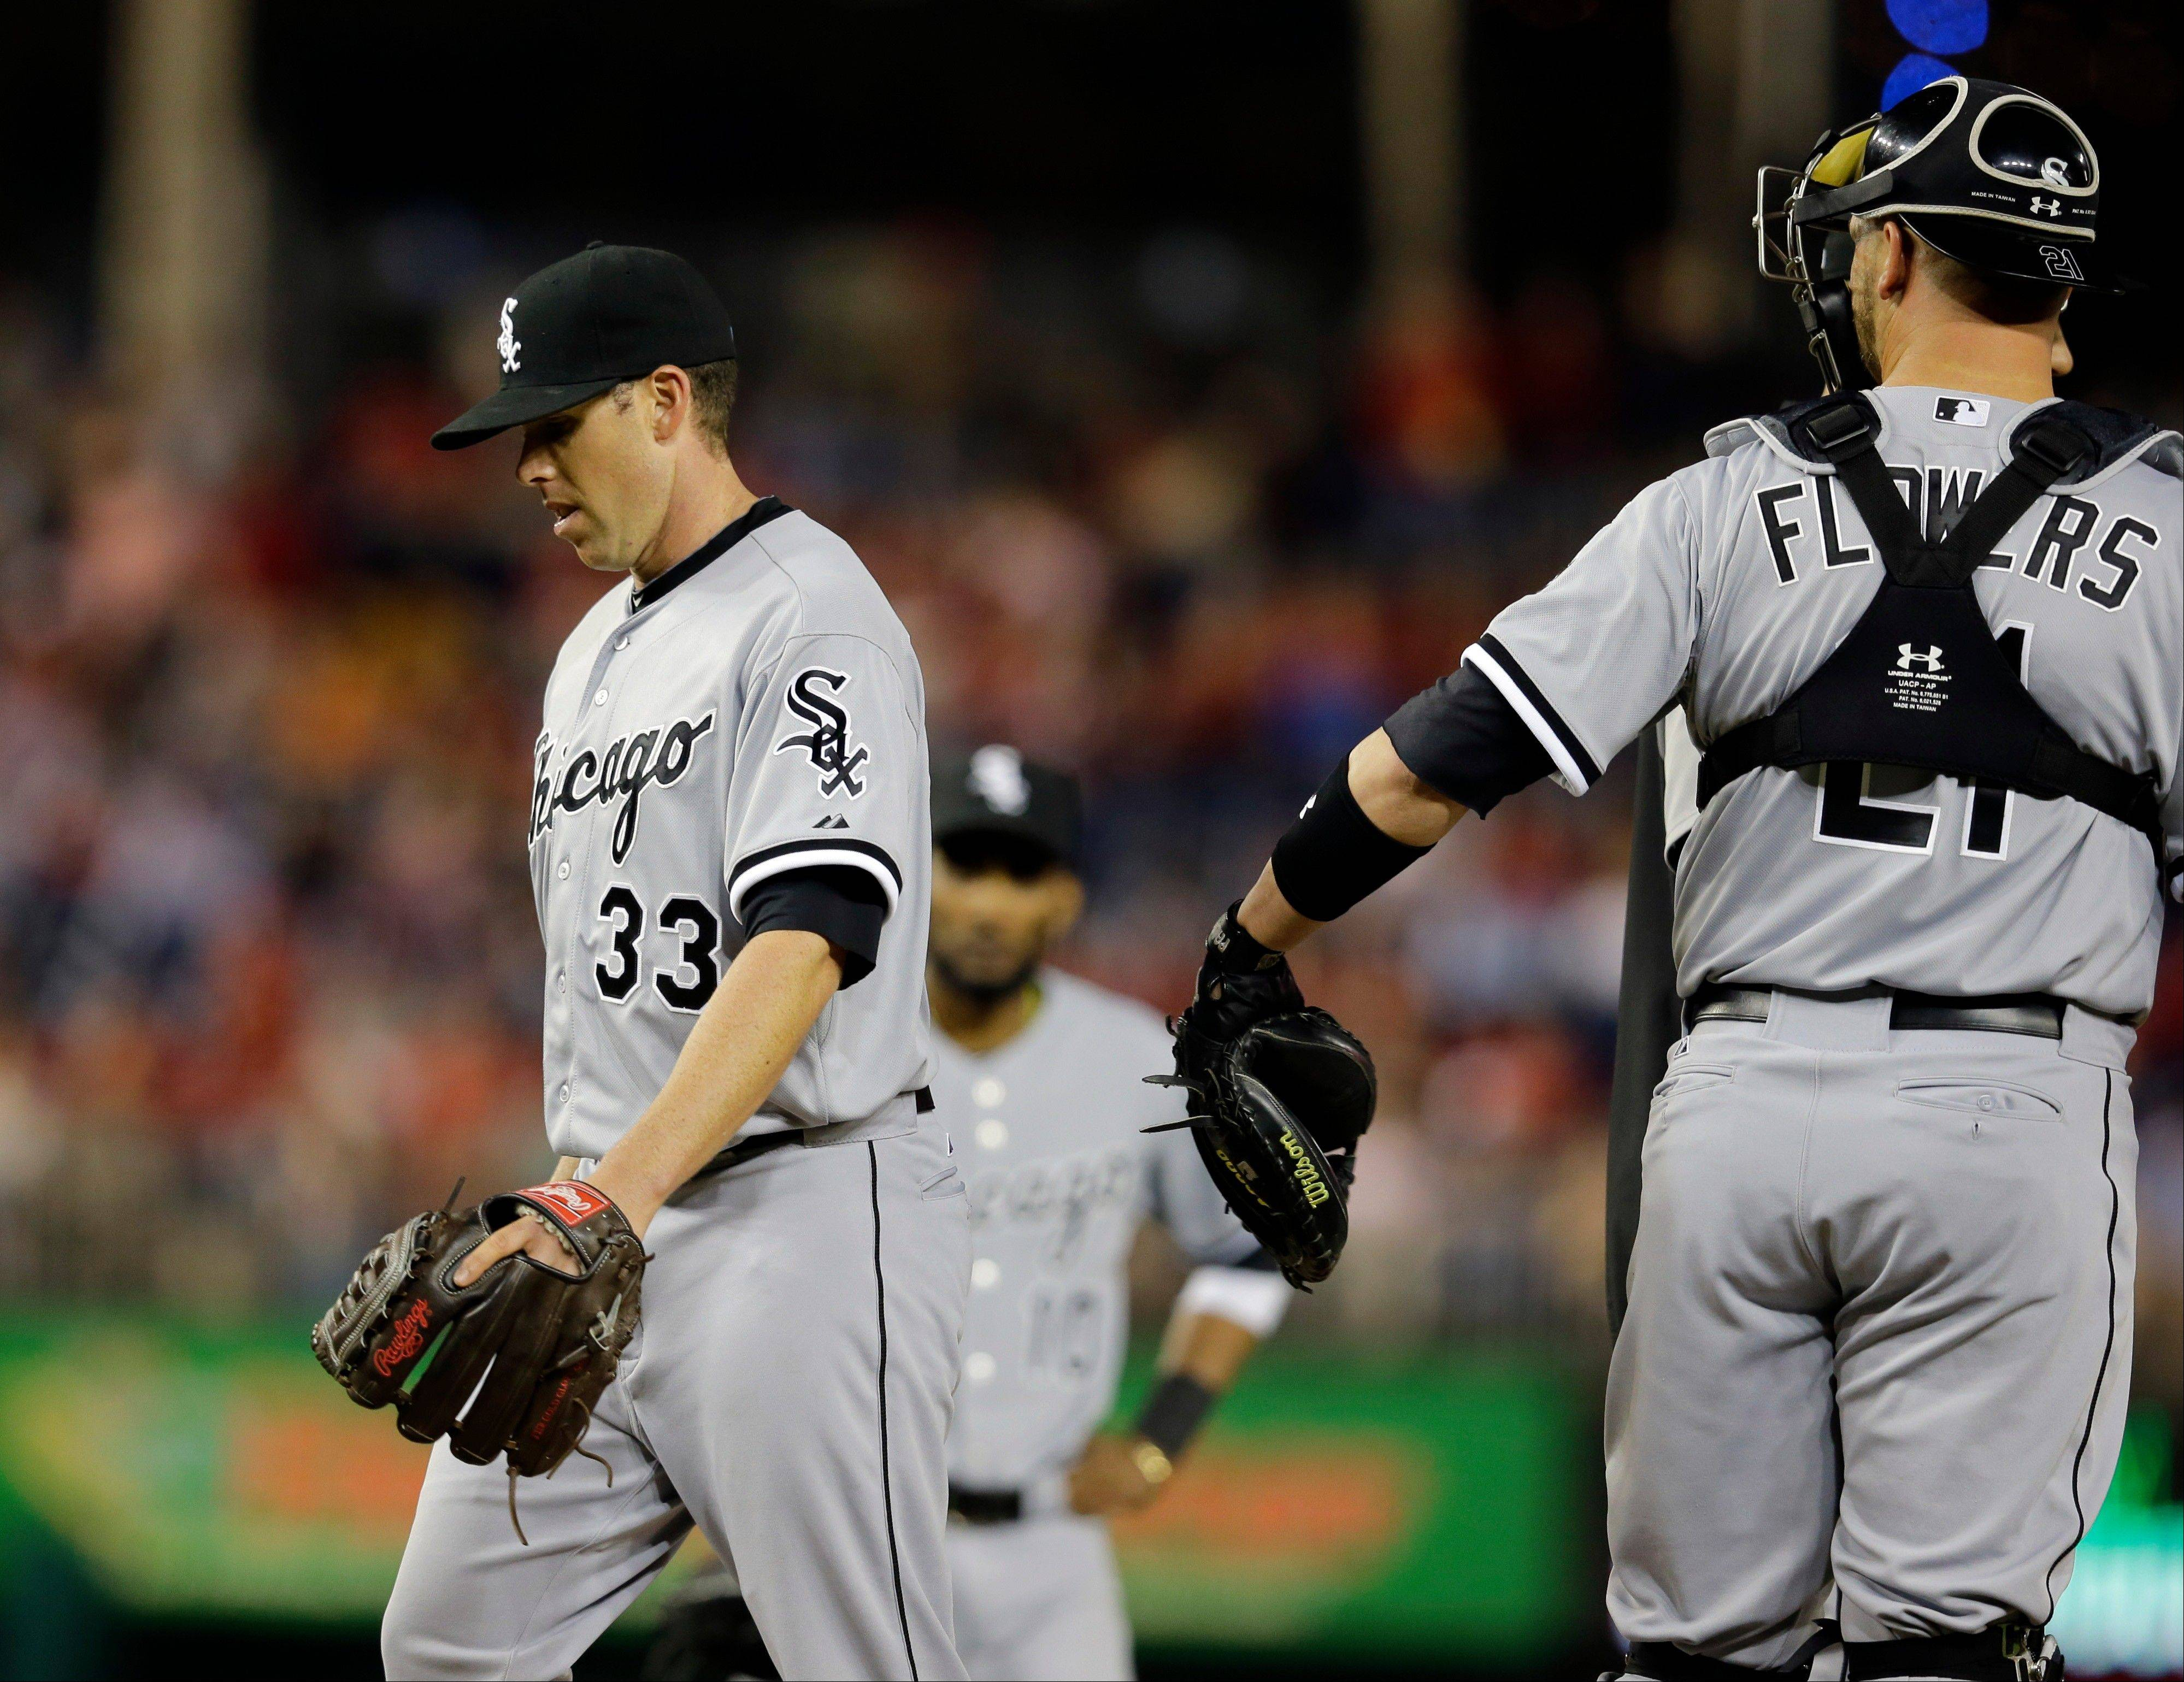 Chicago White Sox starting pitcher Dylan Axelrod (33) walks to the dugout past catcher Tyler Flowers as he is relieved during the fourth inning of an interleague baseball game against the Washington Nationals at Nationals Park, Thursday, April 11, 2013, in Washington.